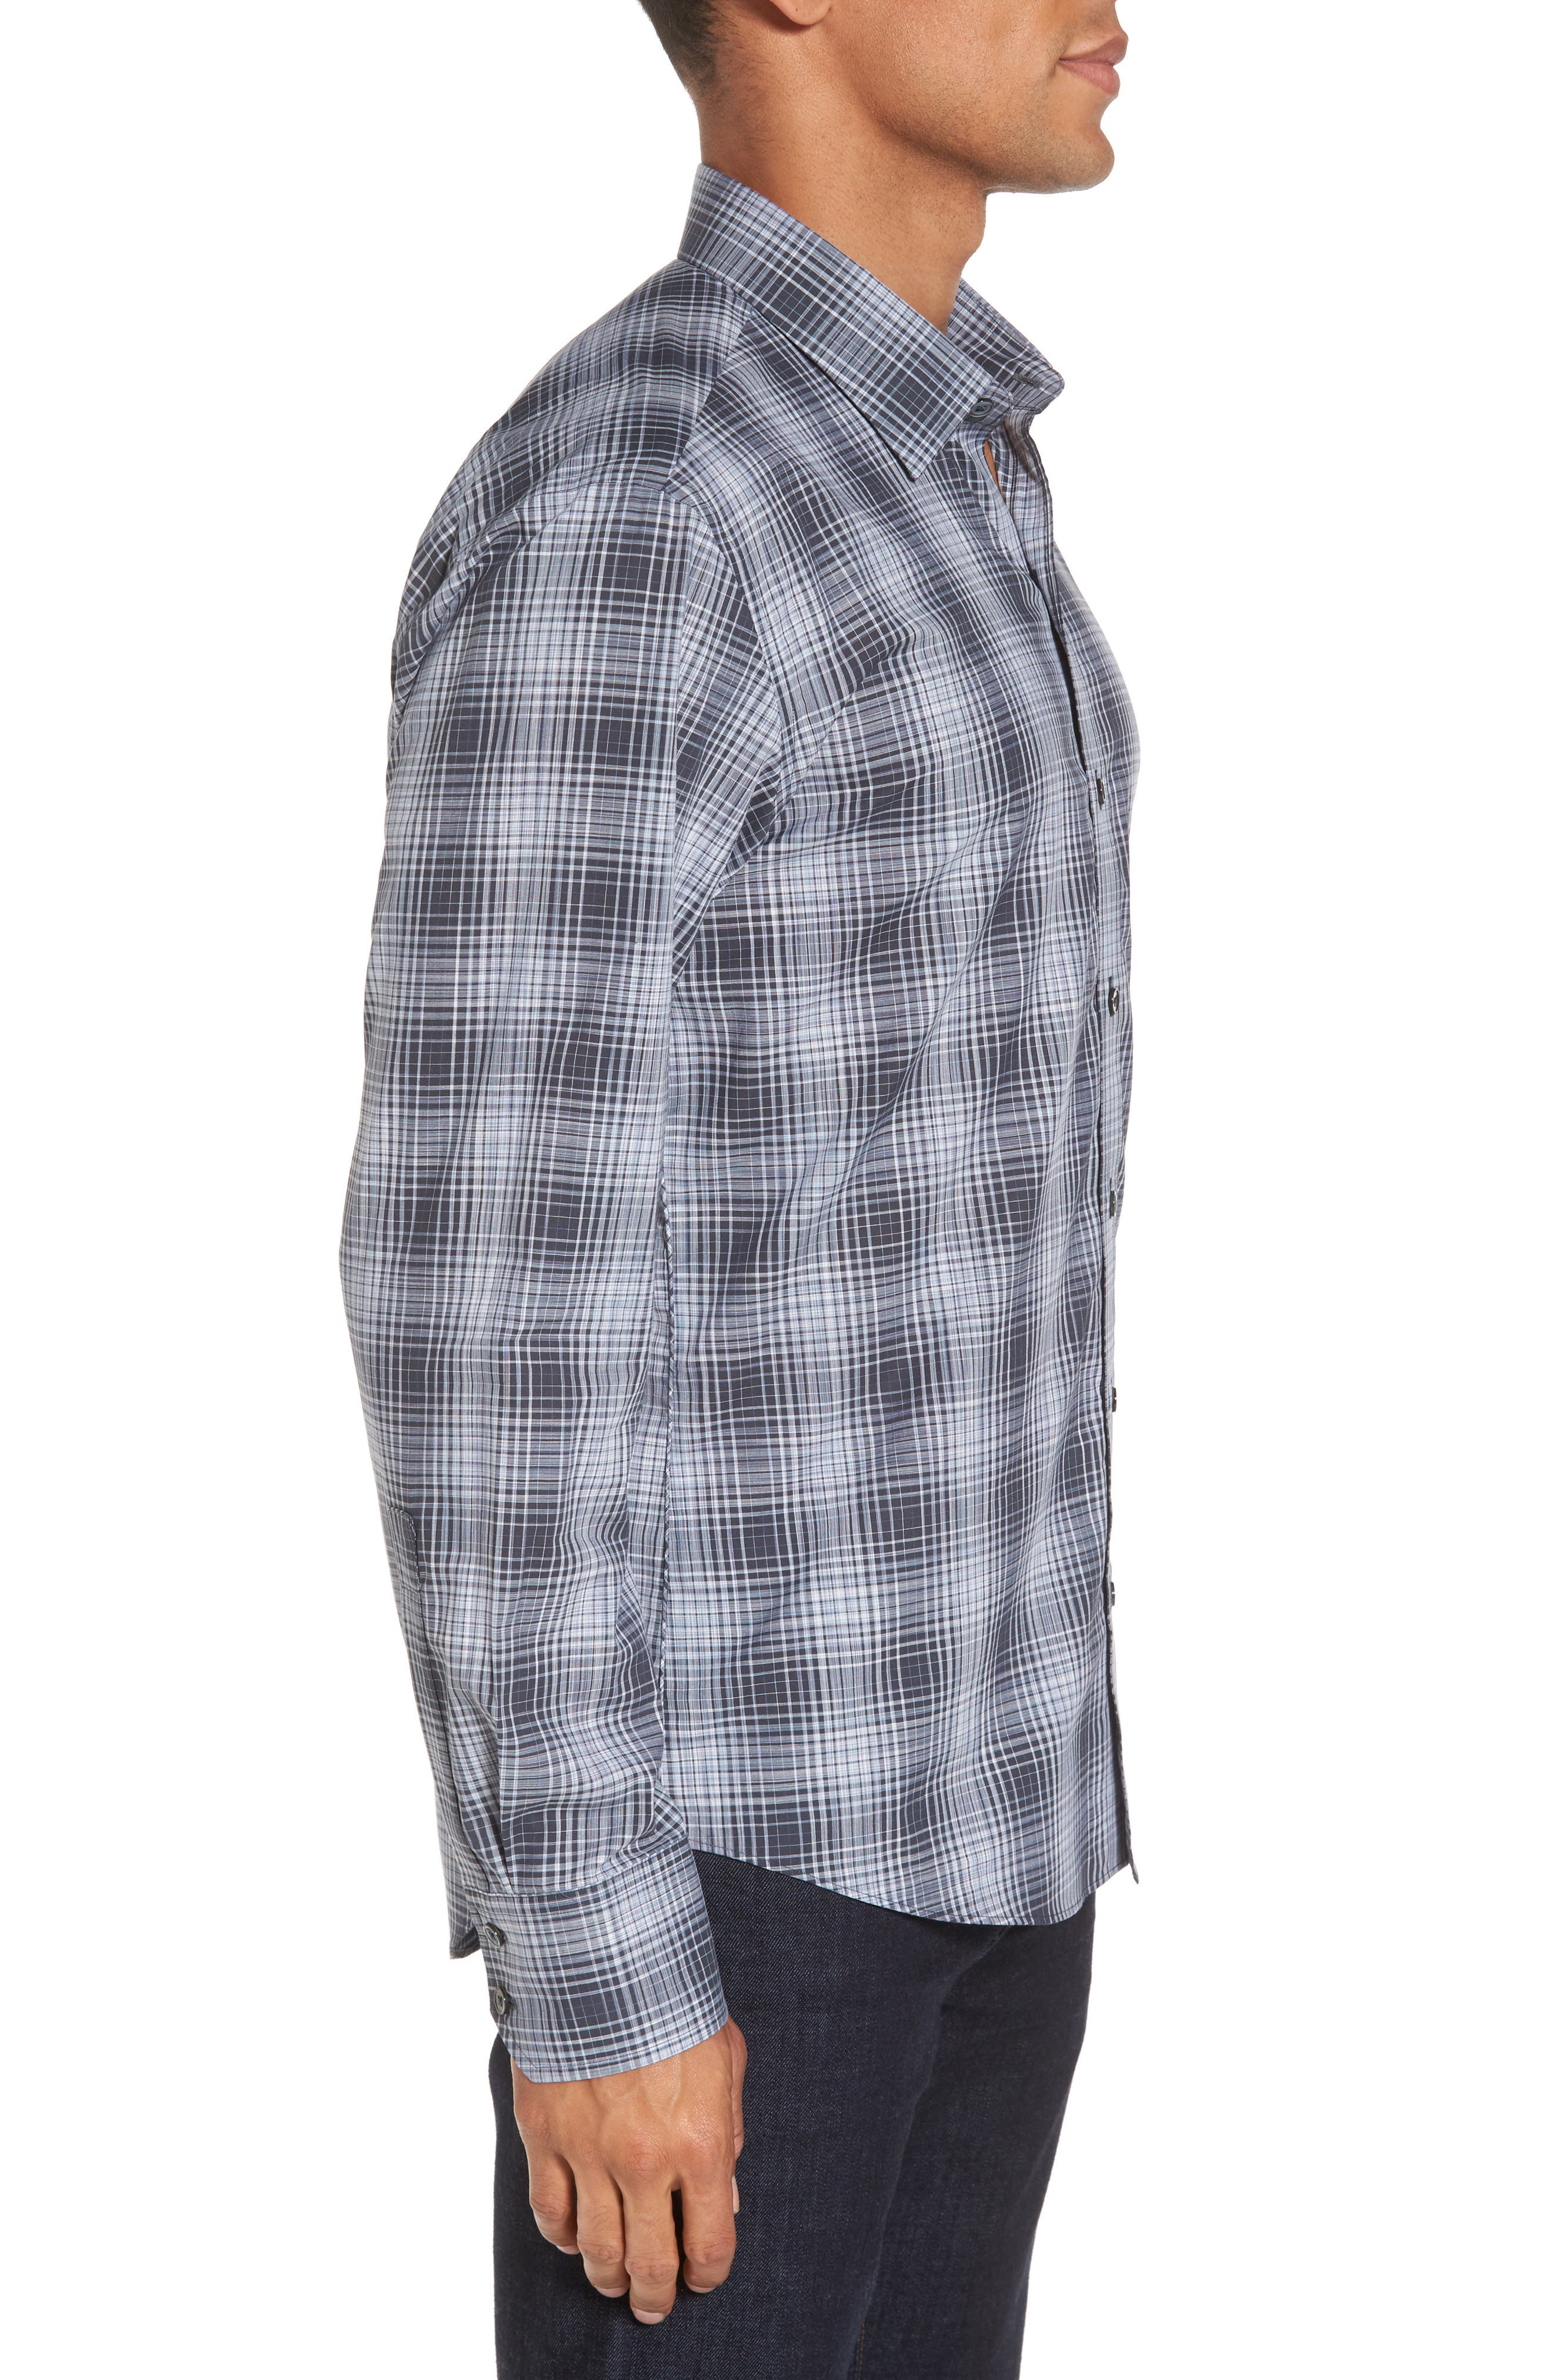 Zander Check Sport Shirt,                             Alternate thumbnail 3, color,                             021